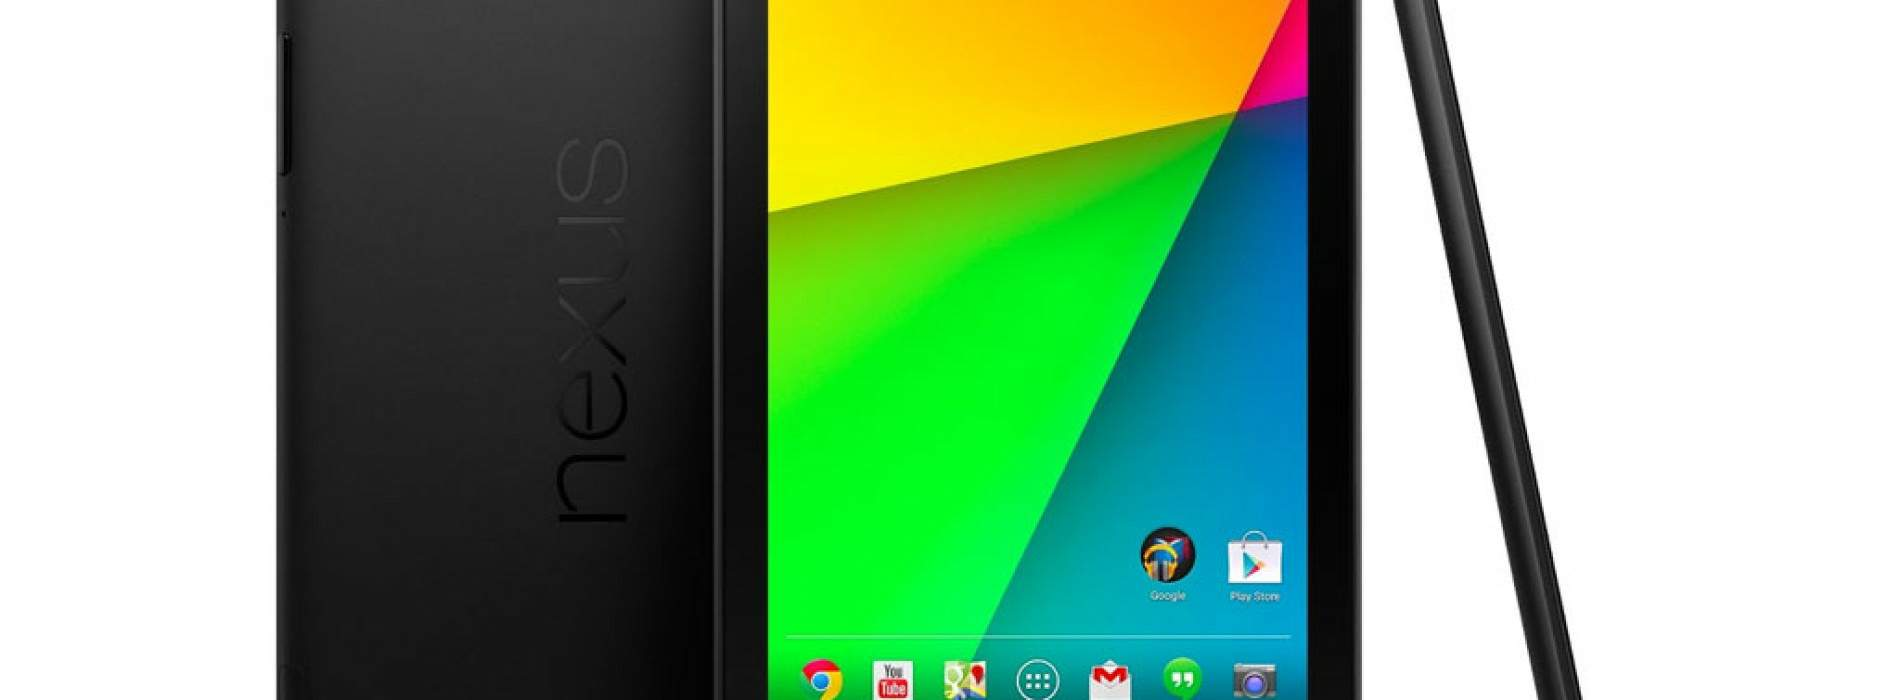 Google Nexus 7: La tablet de 7 pulgadas con mayor resolución